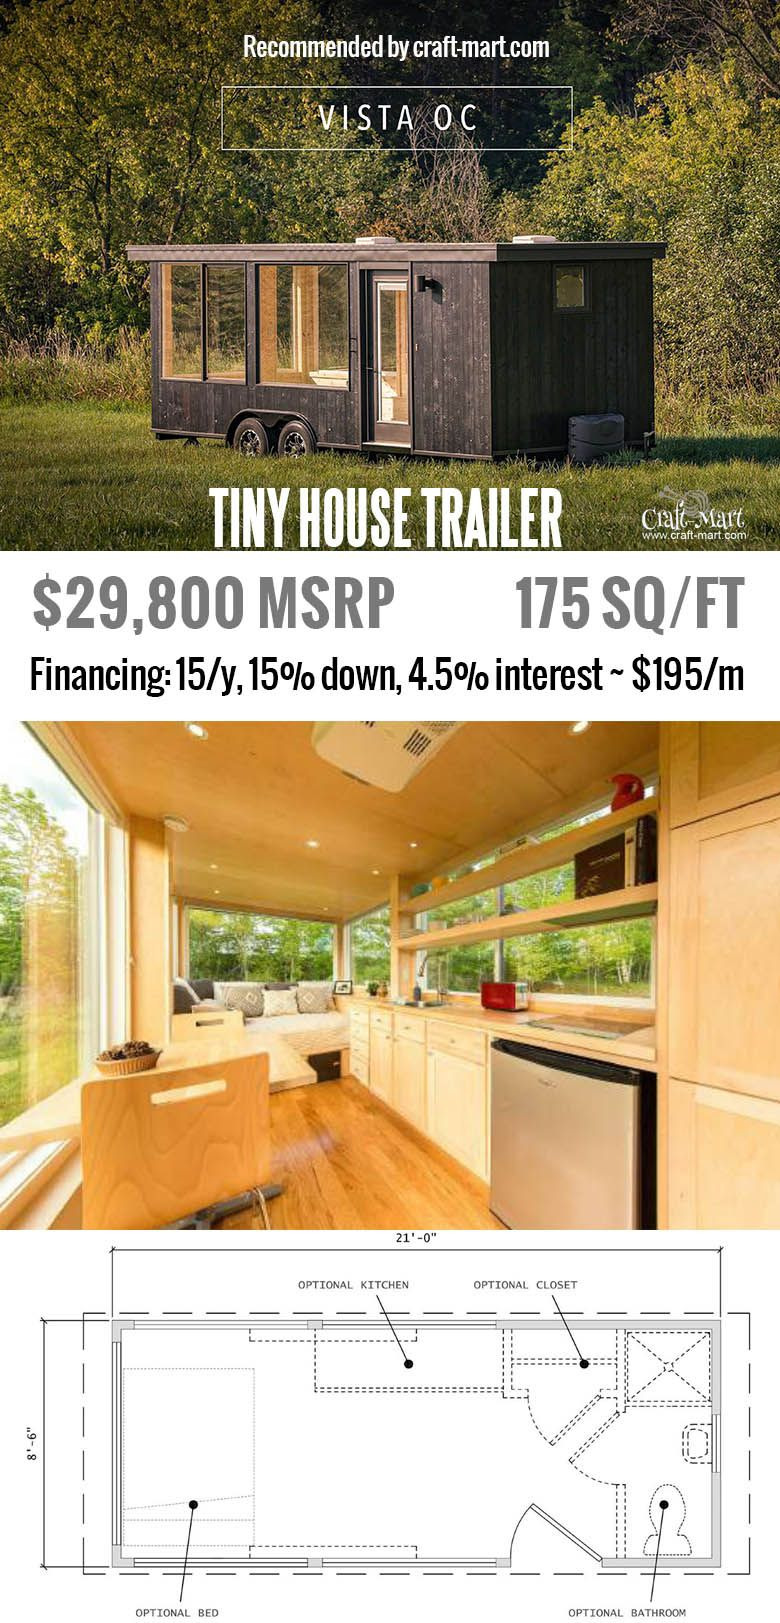 Tiny House Plans for Sale Unique 10 Gorgeous Tiny House Trailers for Digital Nomads